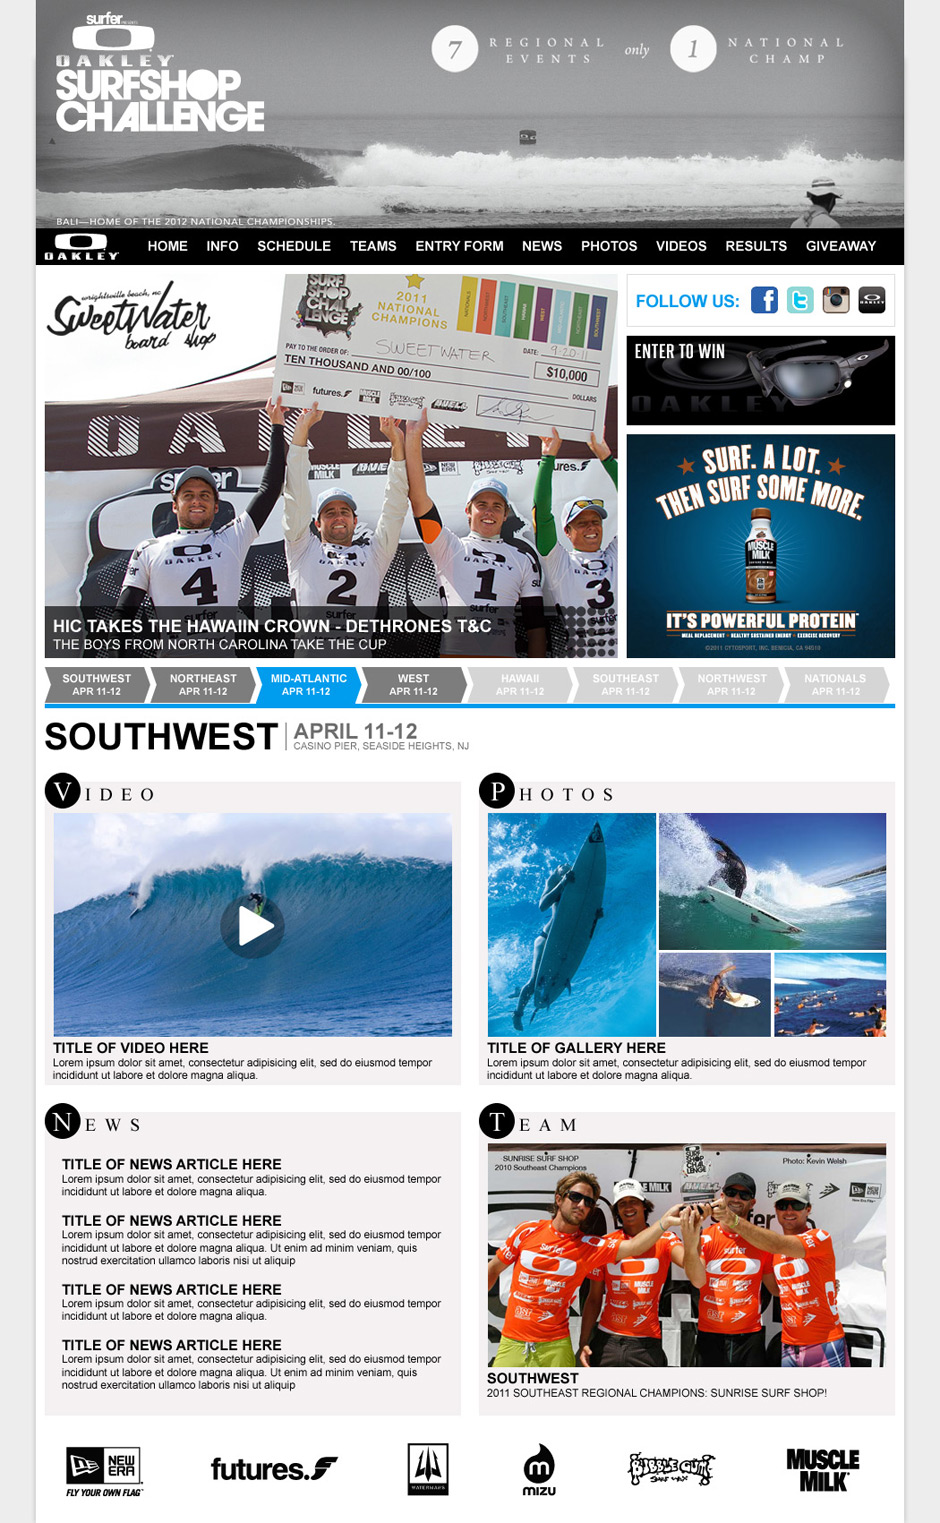 Oakley Surf Shop Challenge 2012